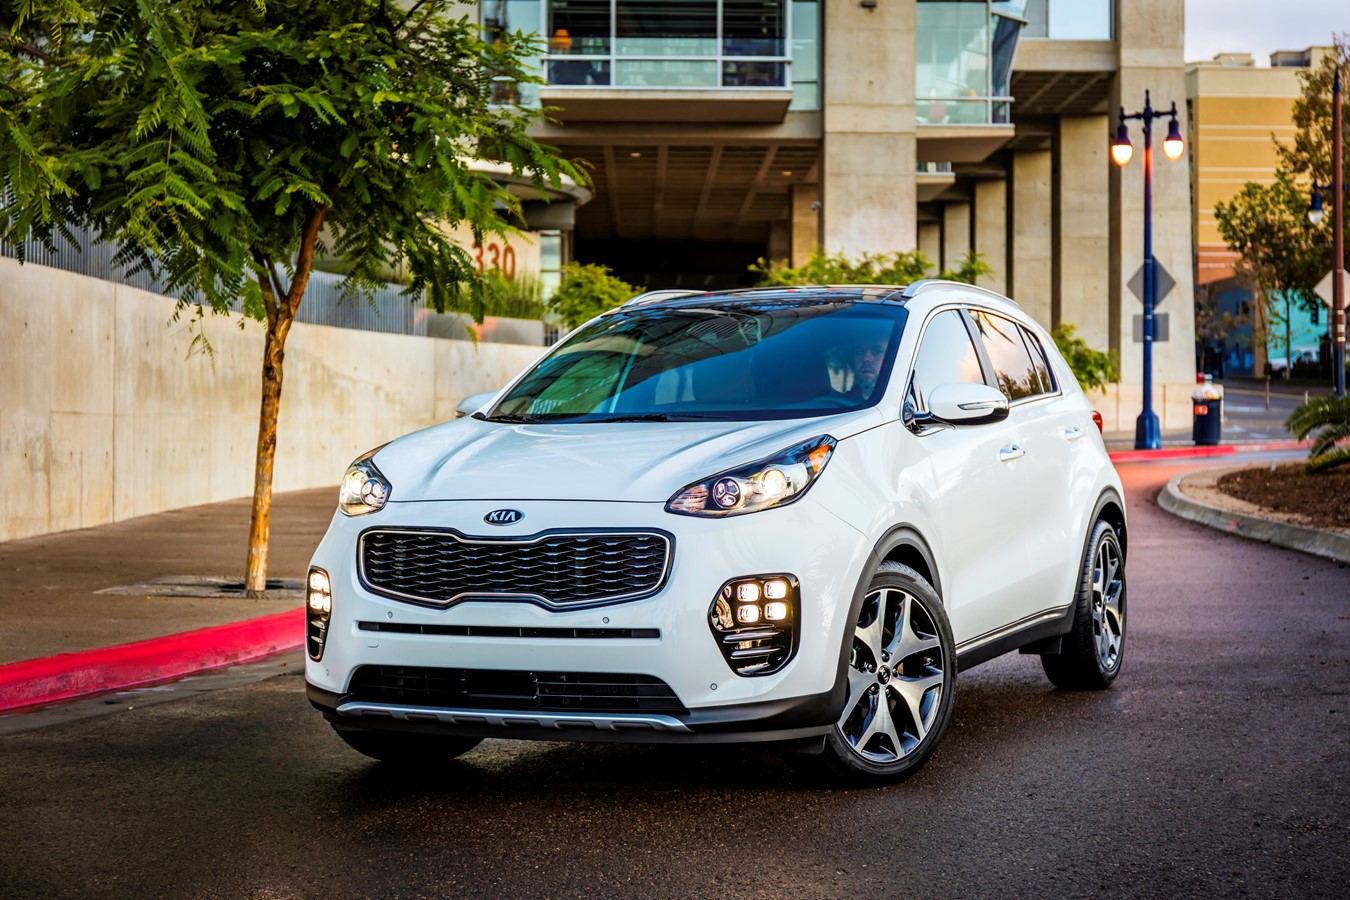 2017 Kia Sportage Accessories >> Kia Motors America Announces Pricing For The All New 2017